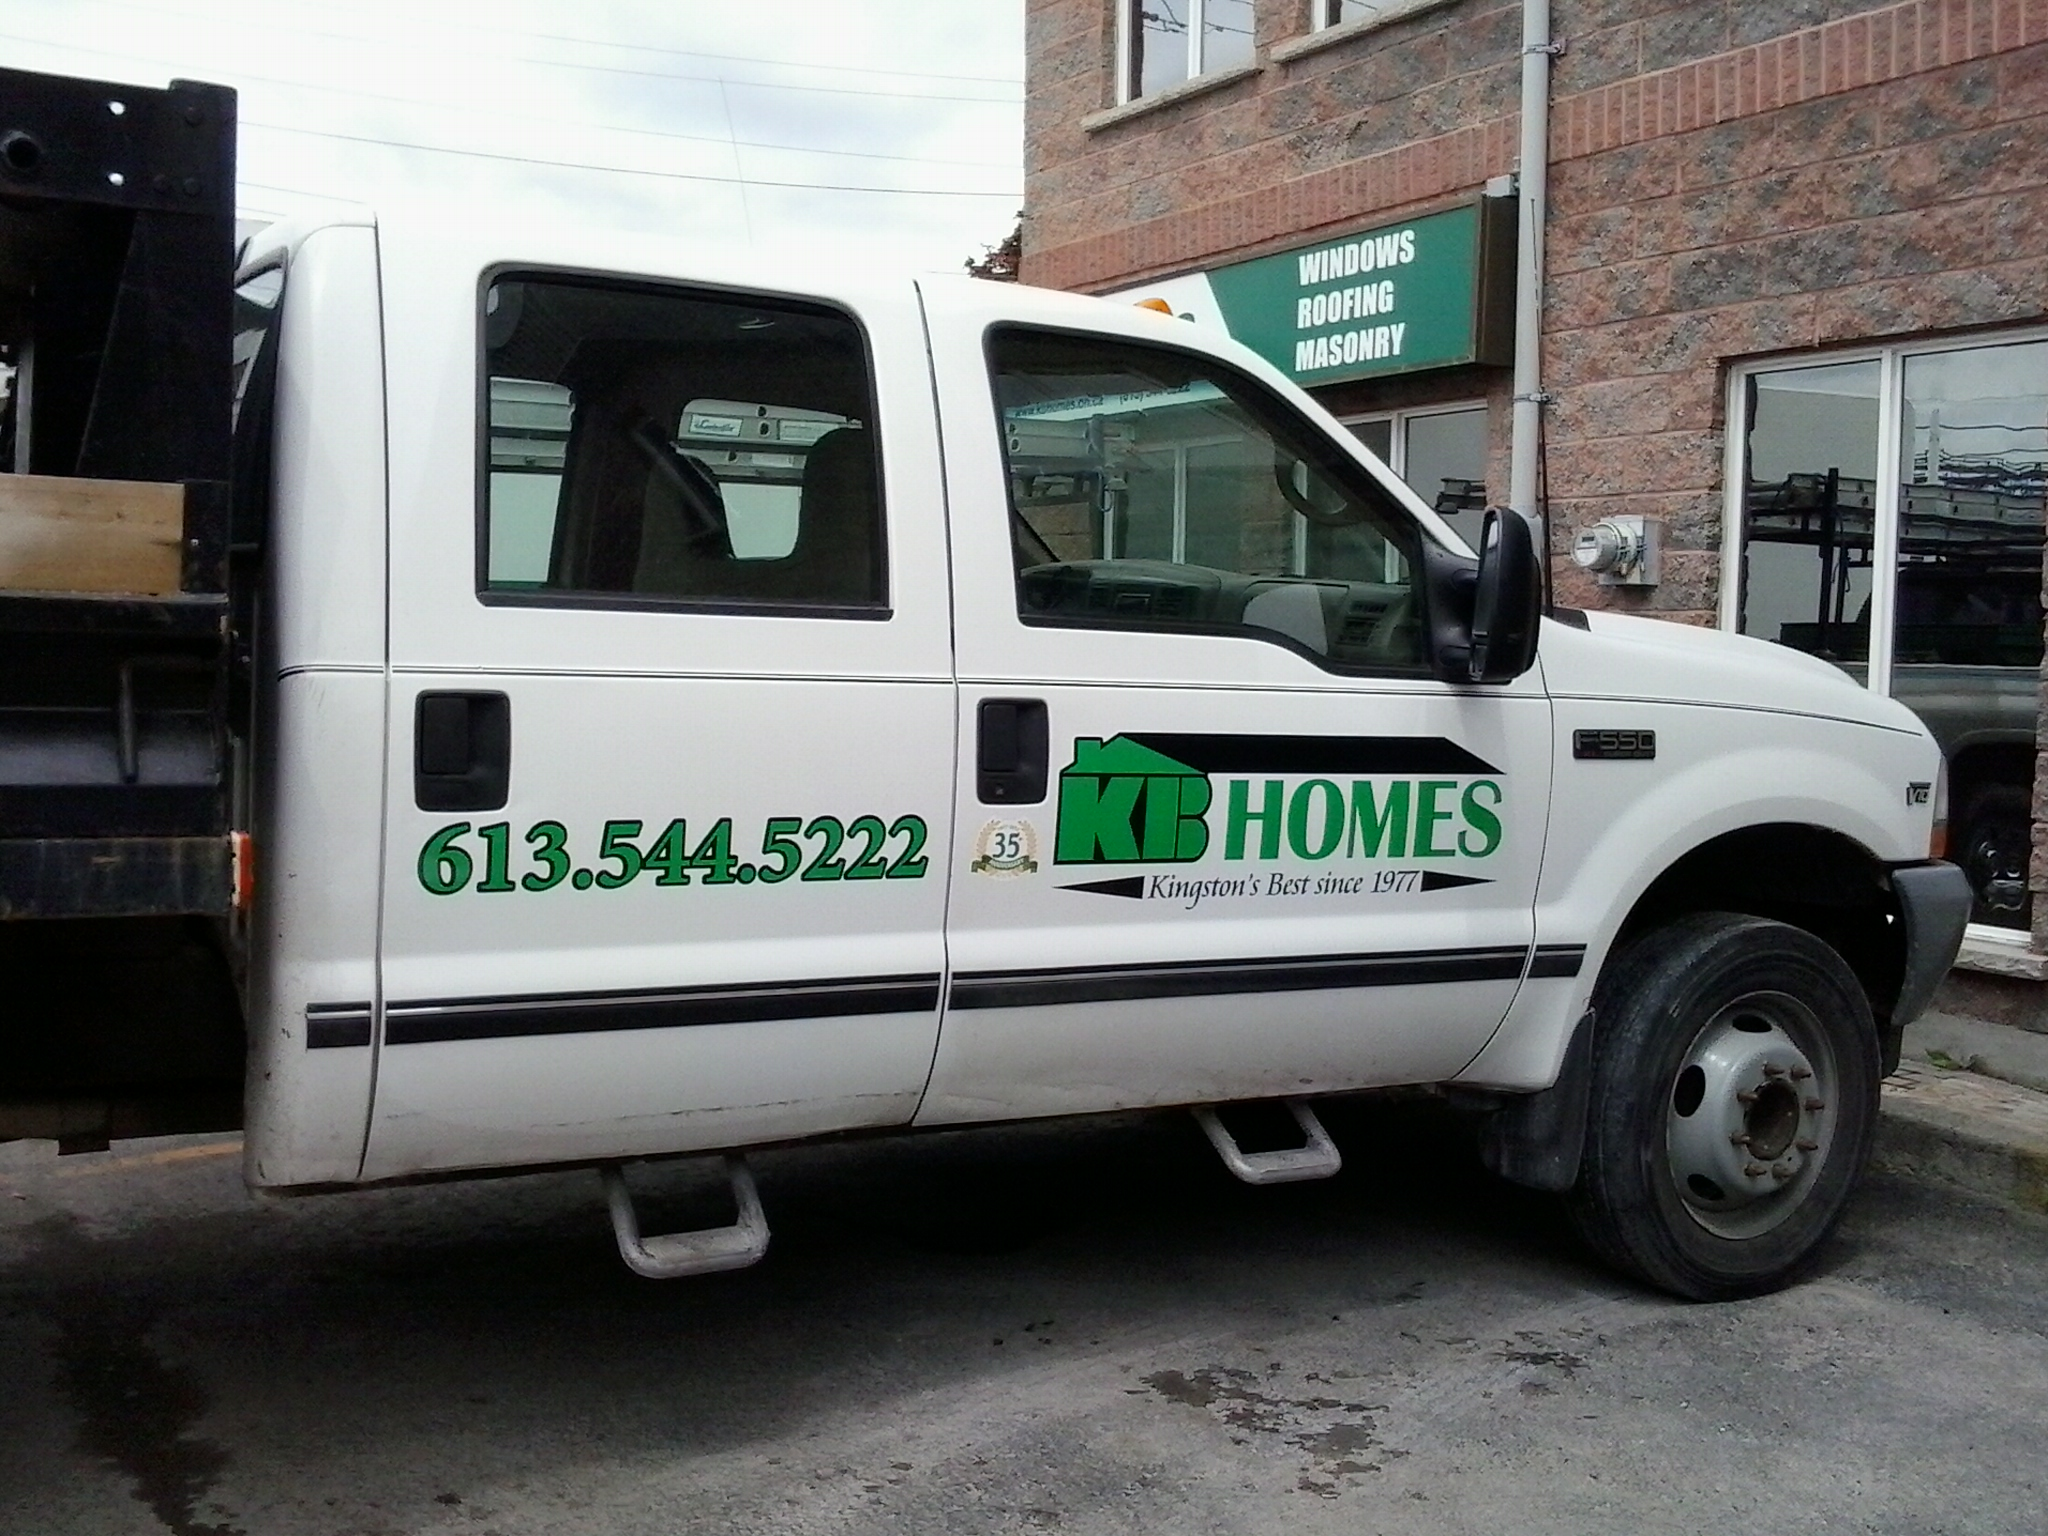 KB homes Truck